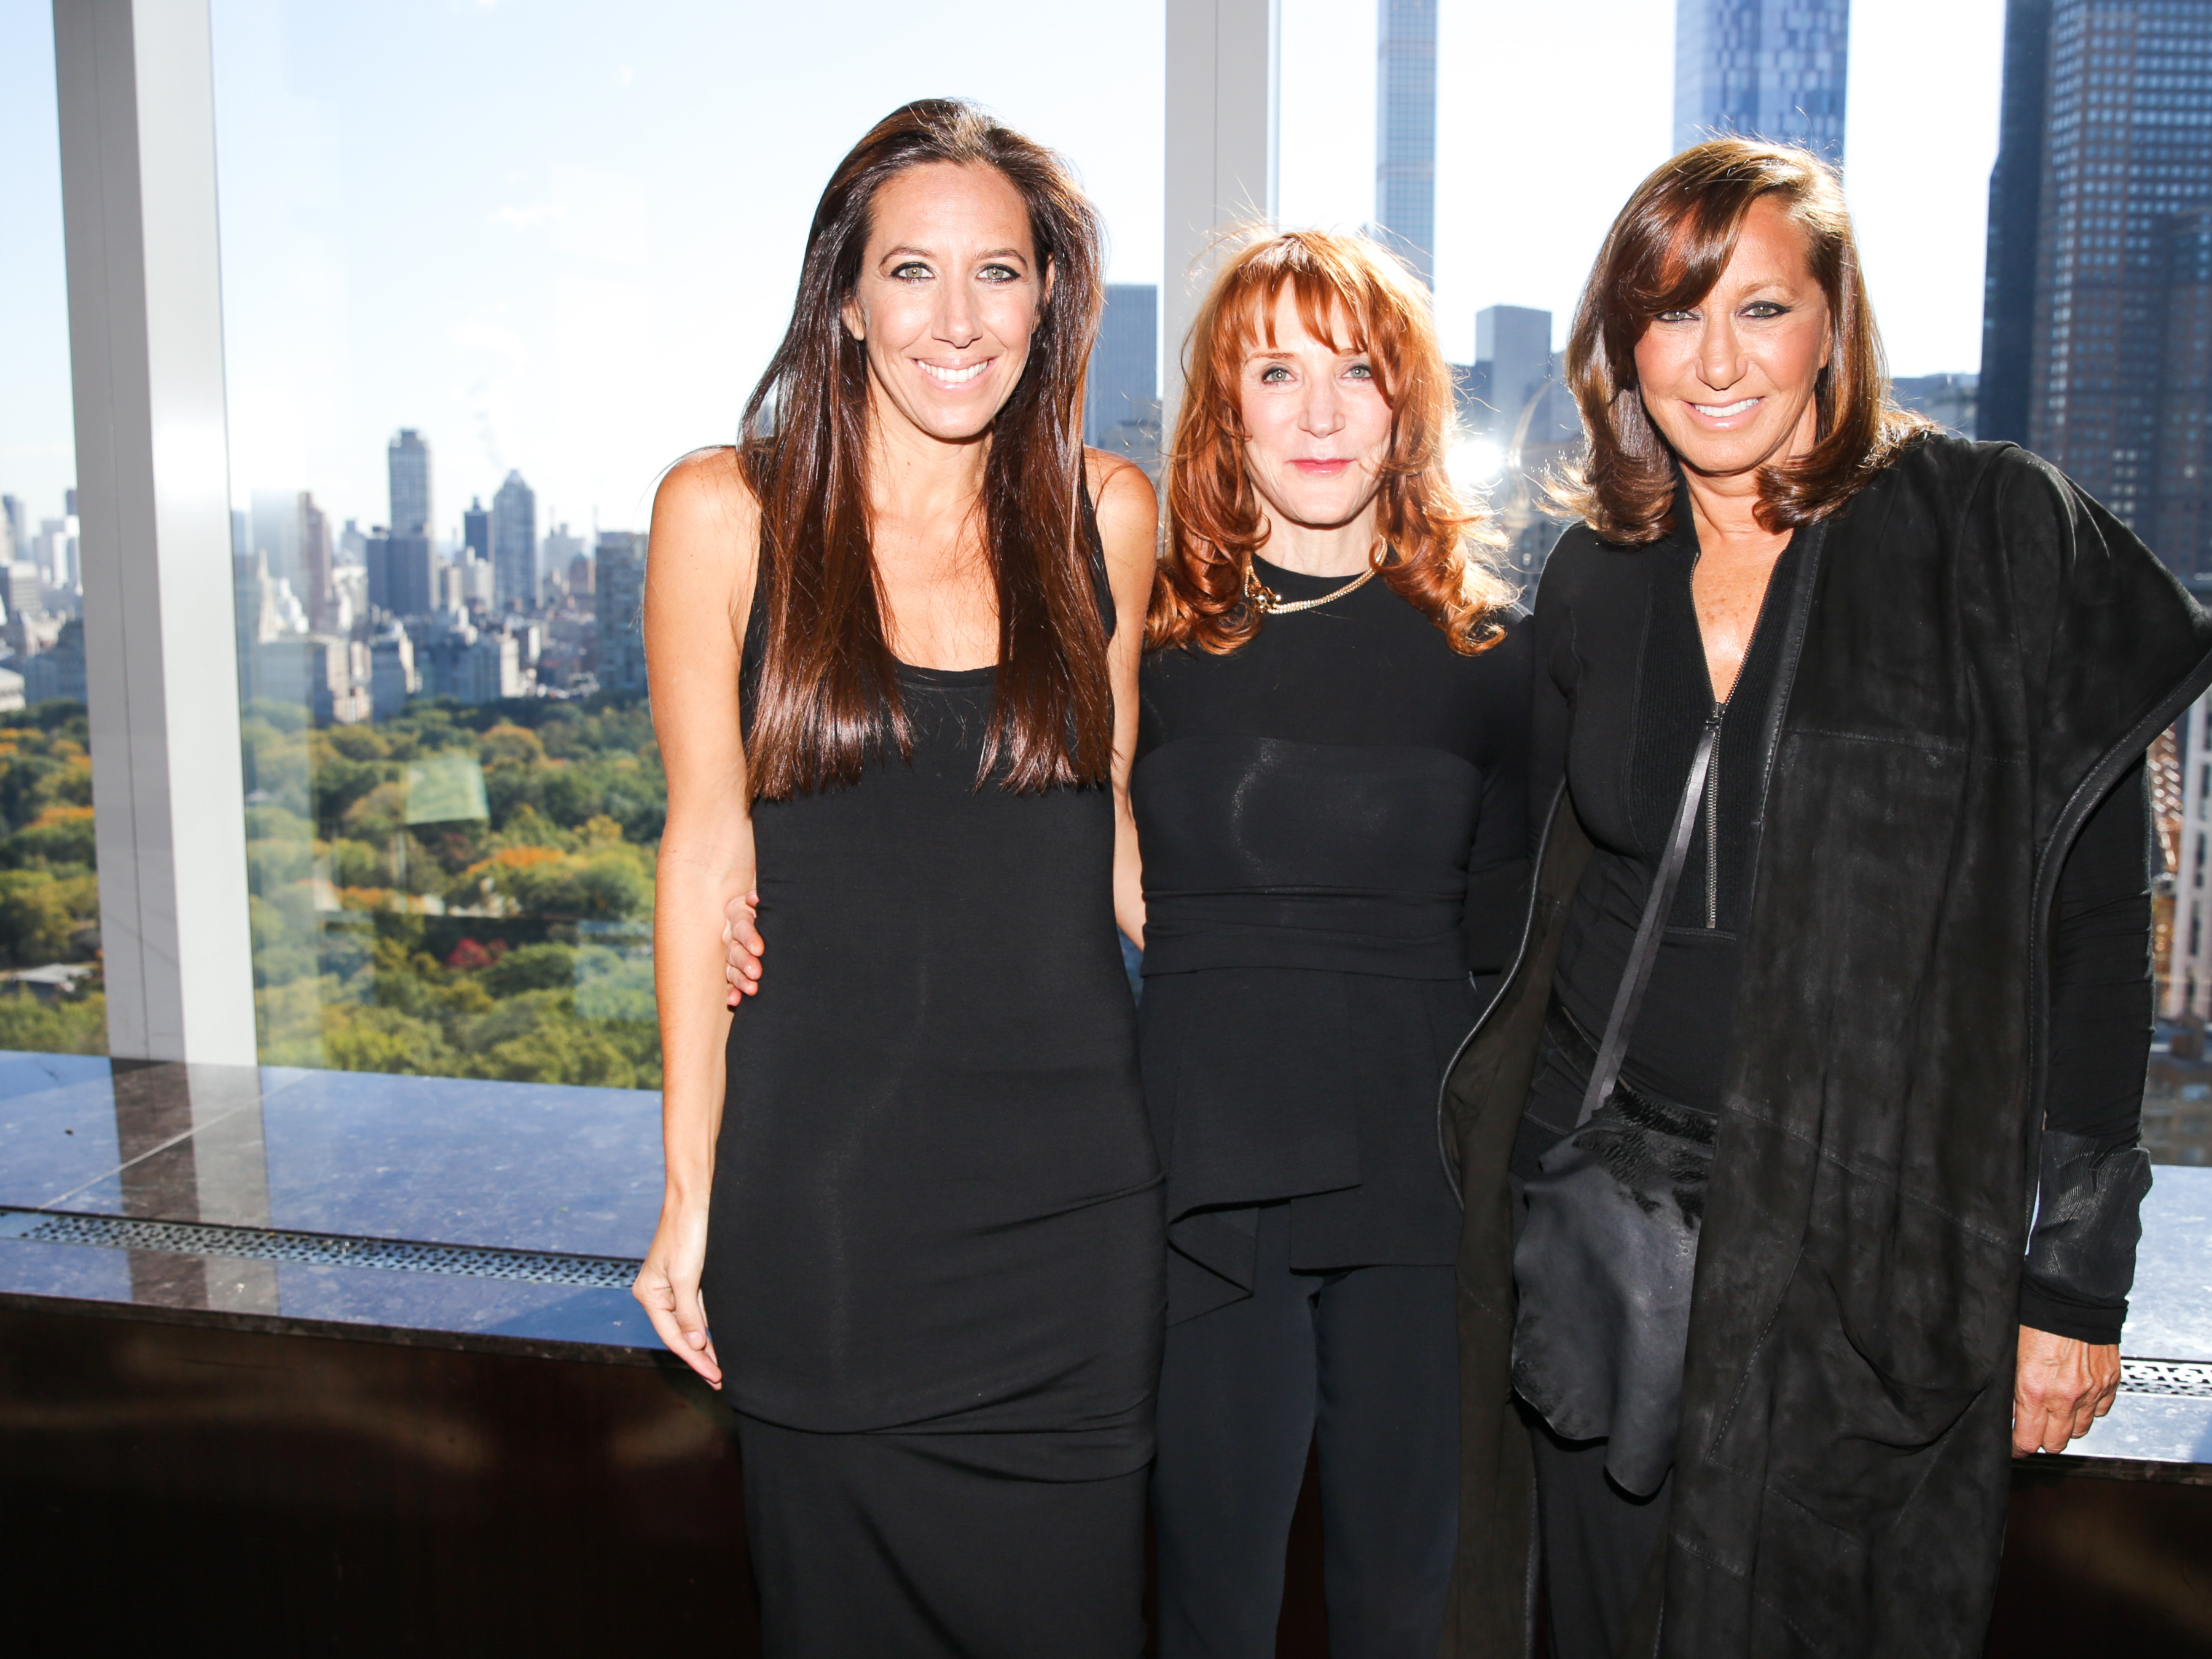 To acquire Cohen patti leaving donna karan picture trends